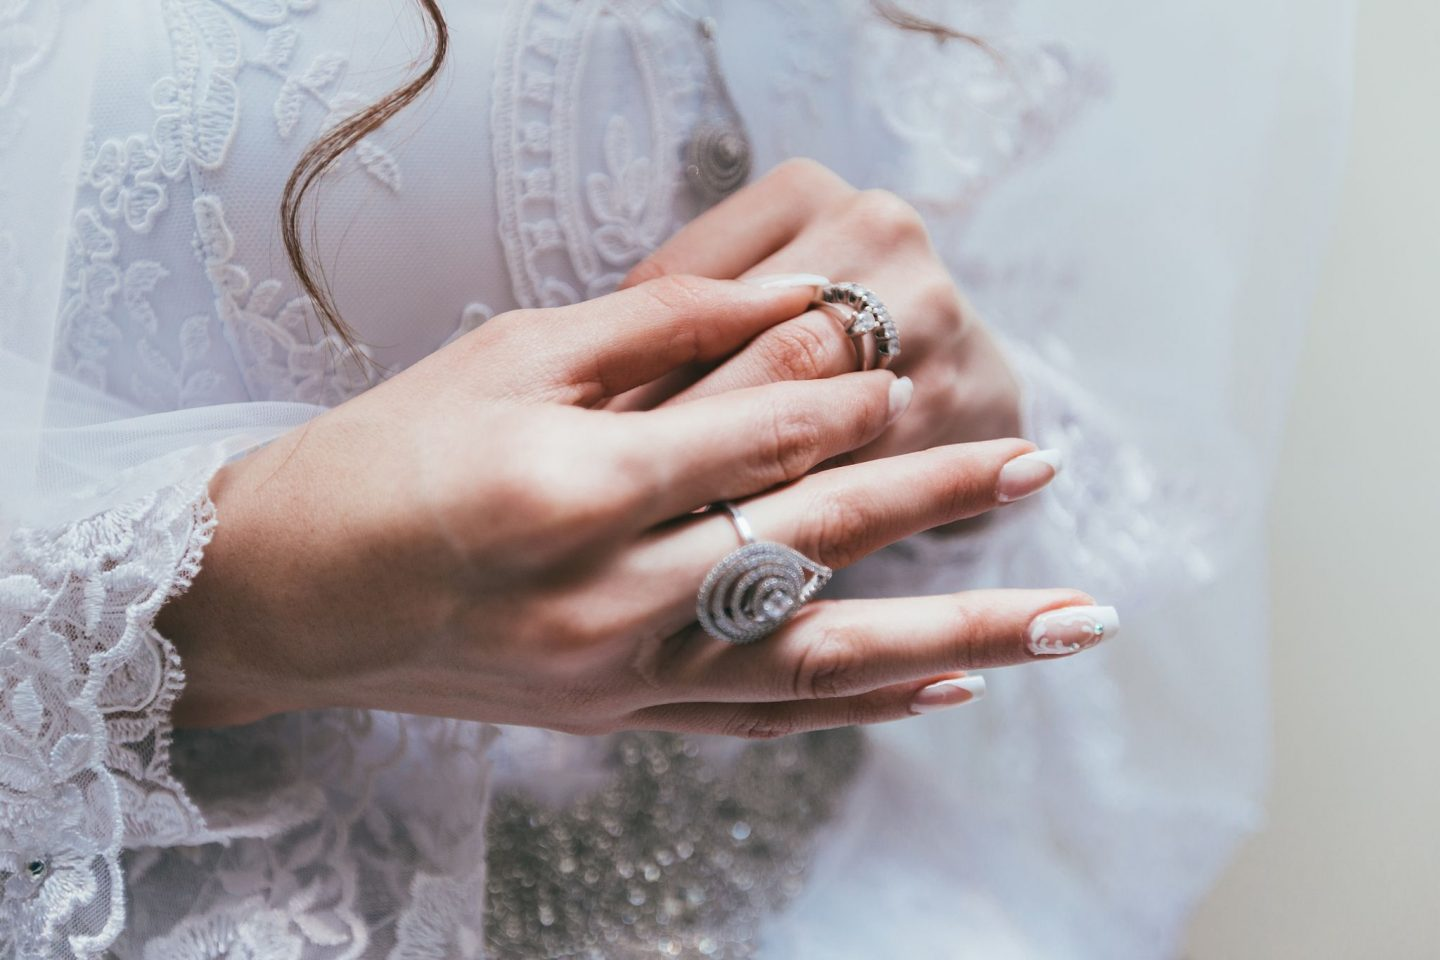 4 ACCEPTABLE COMPROMISES TO BUY AN ENGAGEMENT RING YOU CAN AFFORD